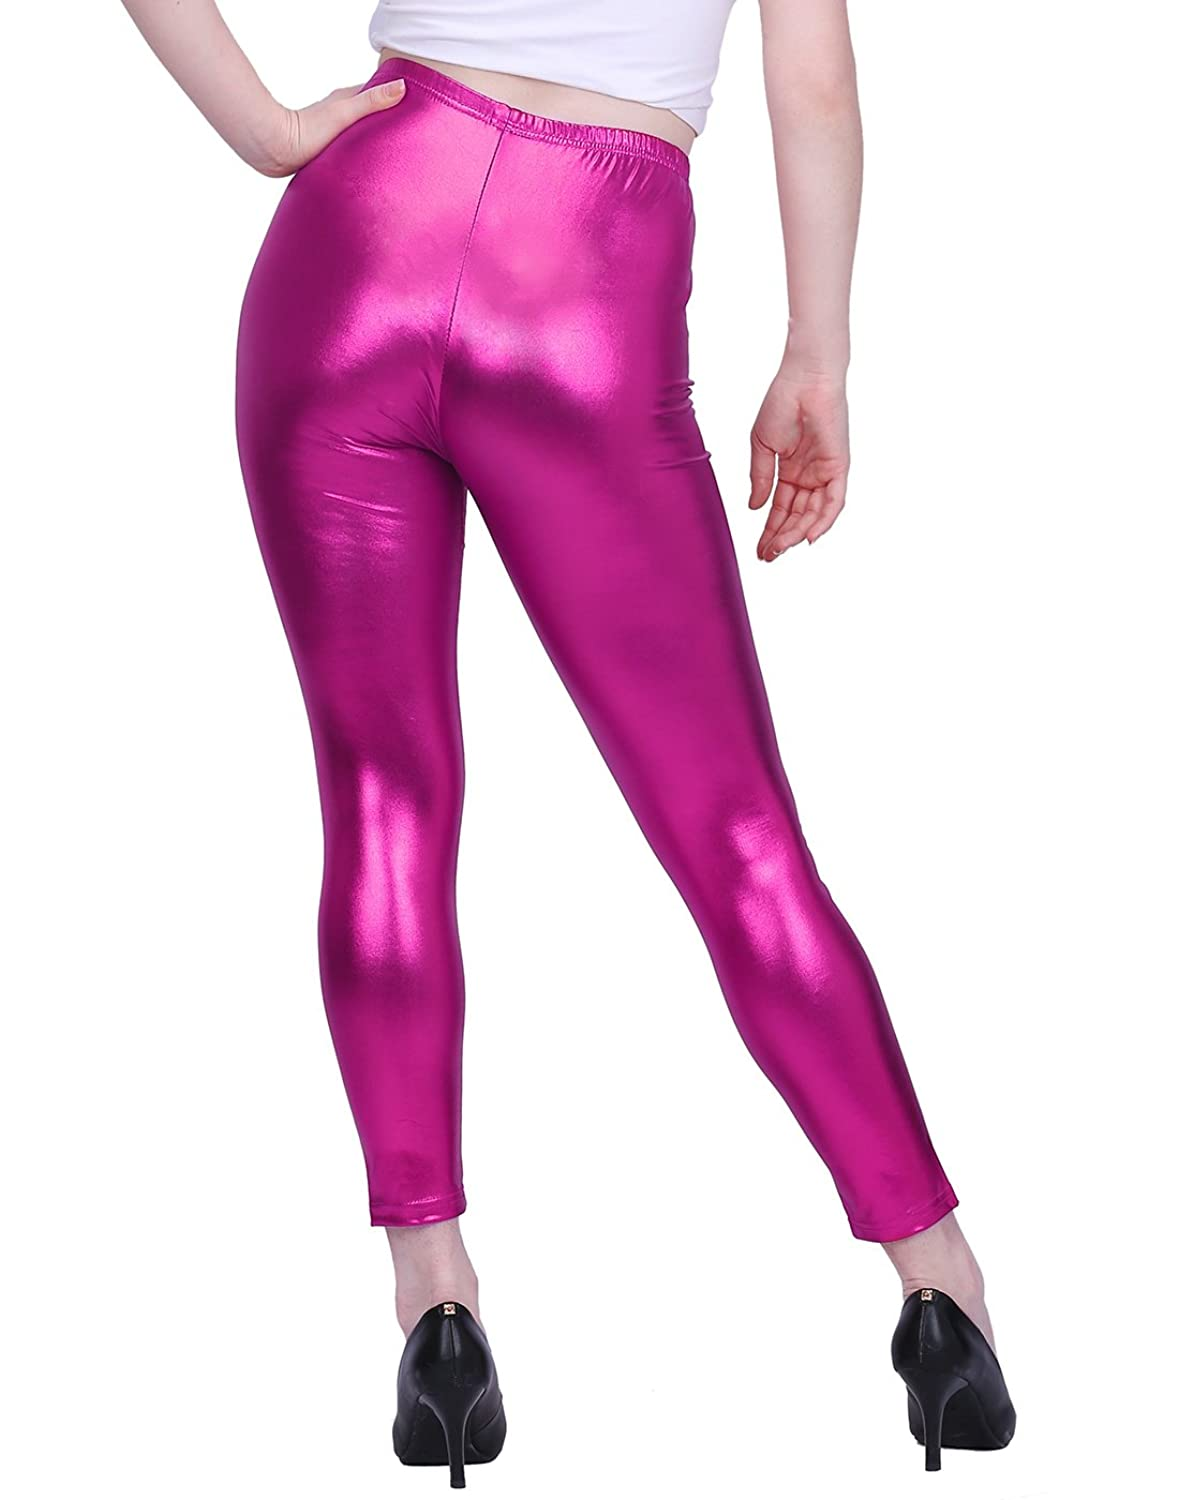 Vintage High Waisted Trousers, Sailor Pants, Jeans HDE Womens Shiny Leggings Metallic Liquid Wet Look Stretch Pants Clubwear $13.99 AT vintagedancer.com